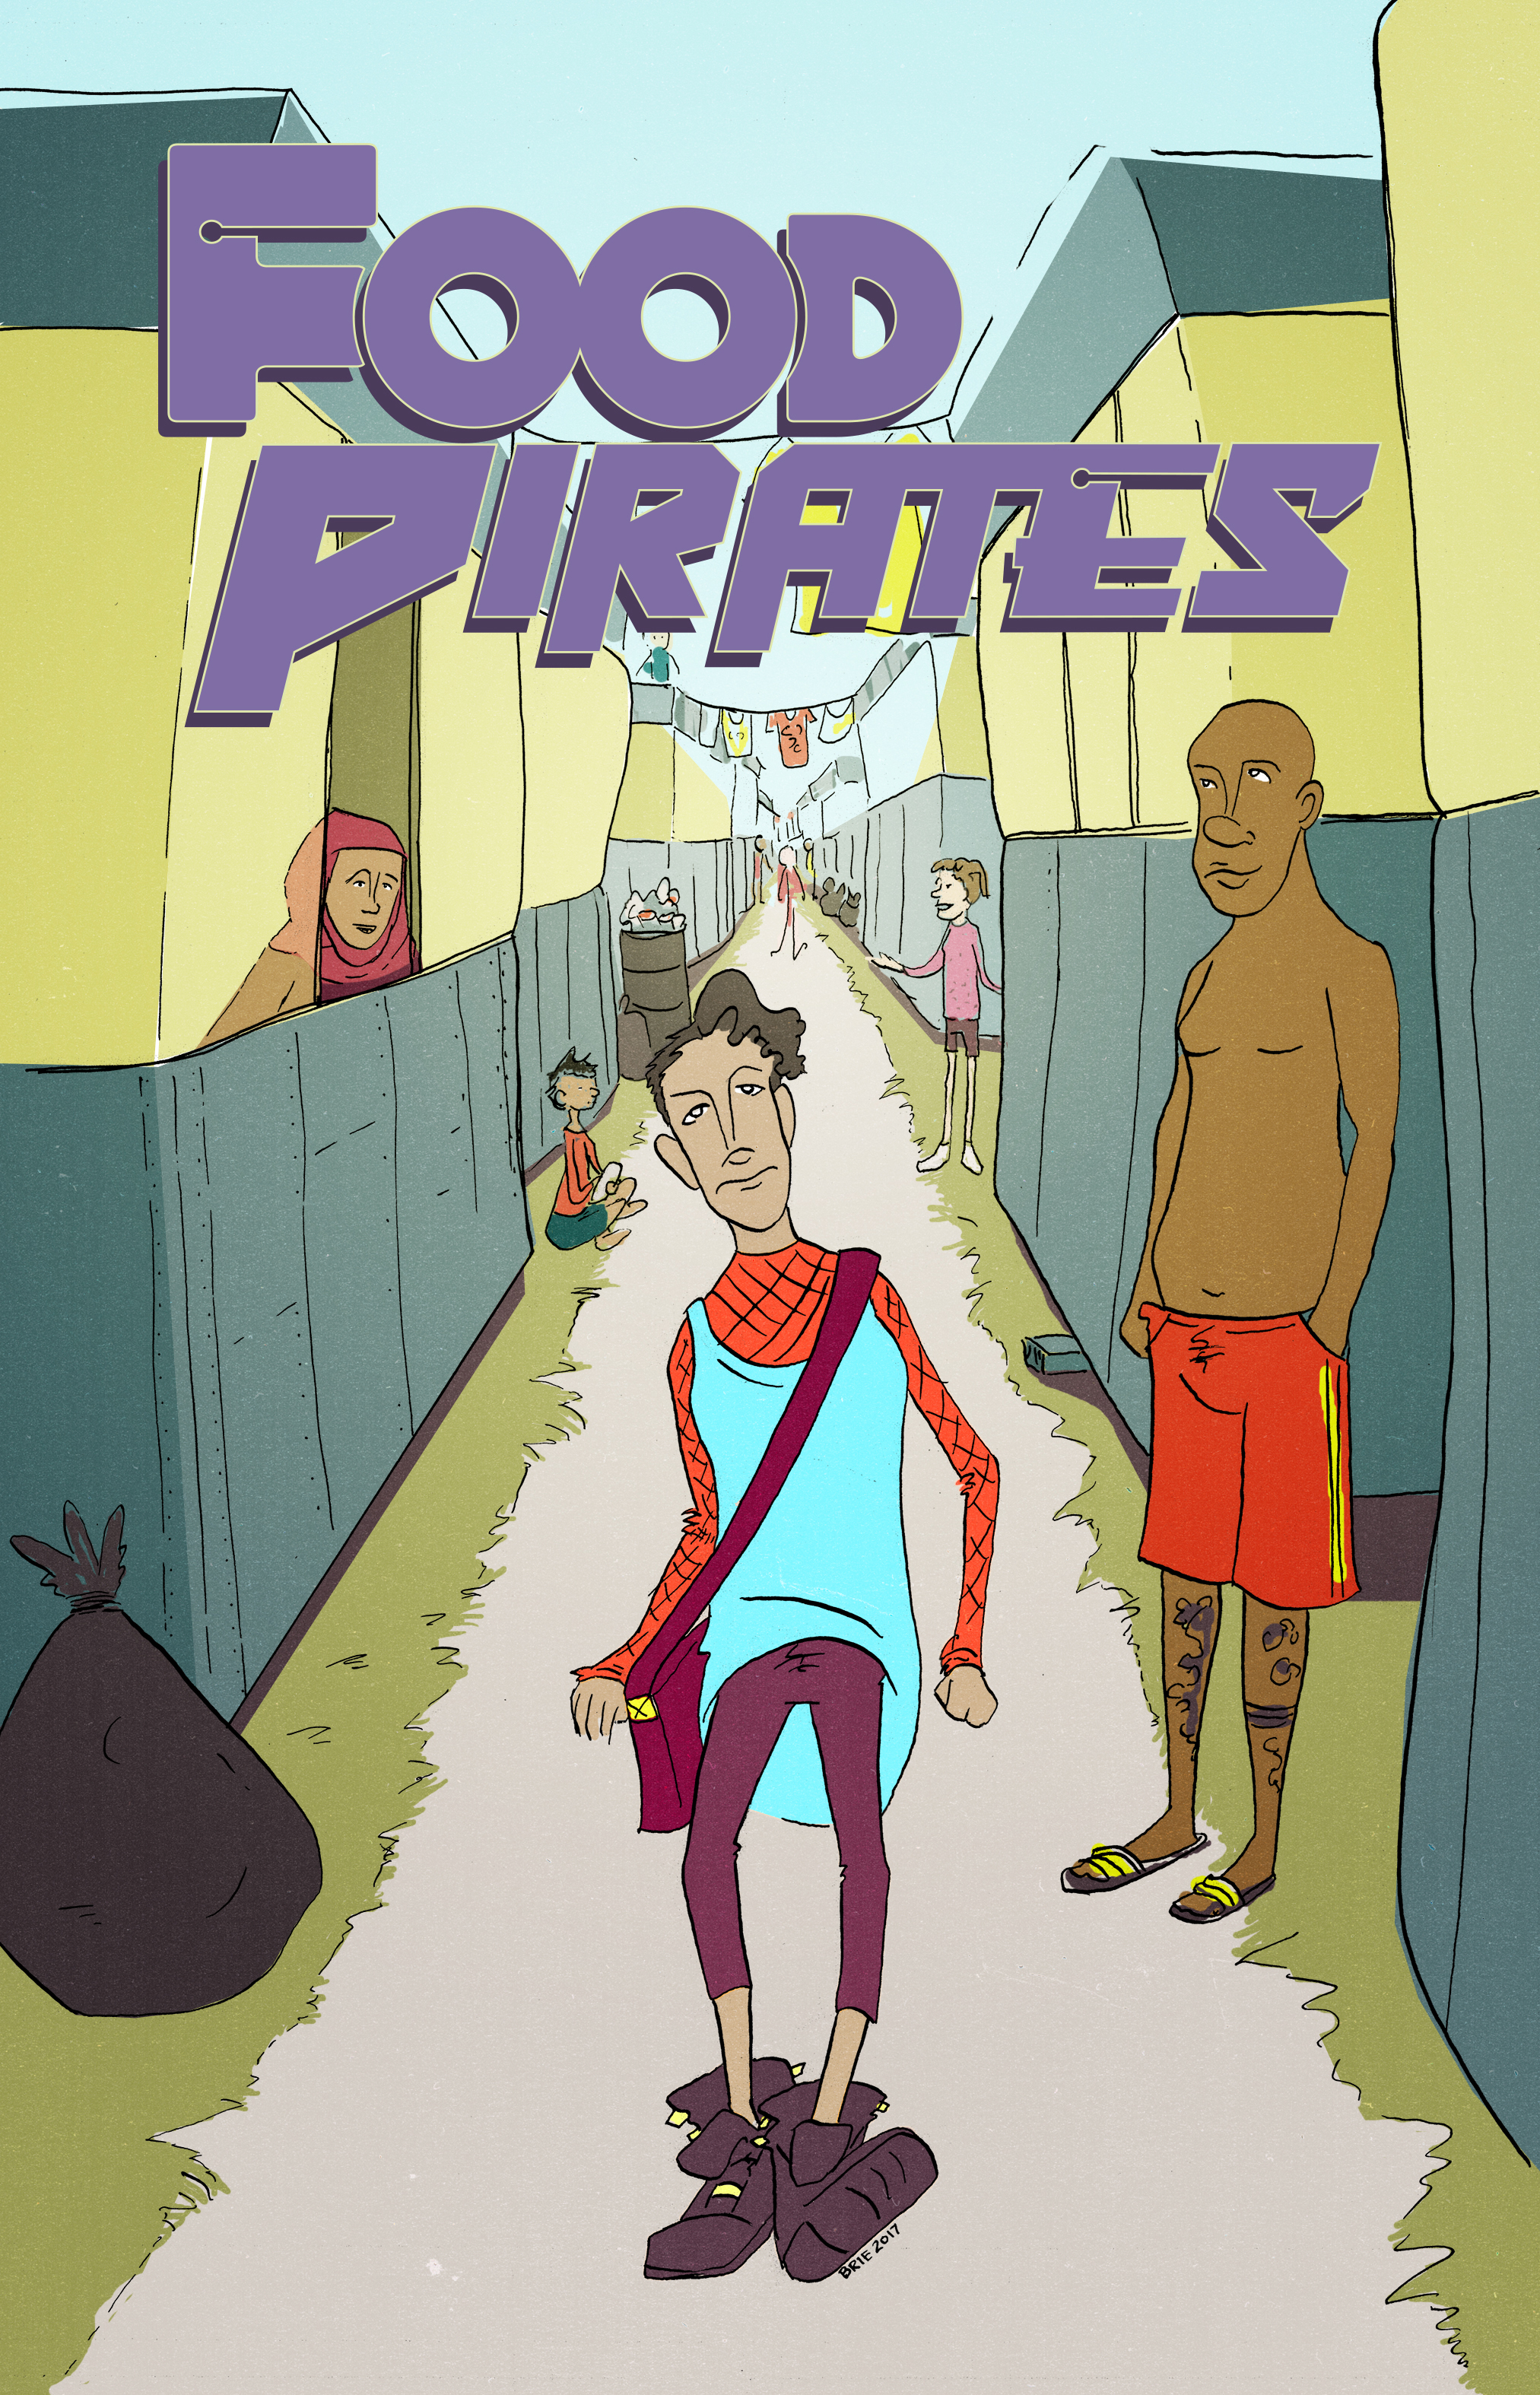 Food Pirates Issue 1 Cover by Brie Alsbury